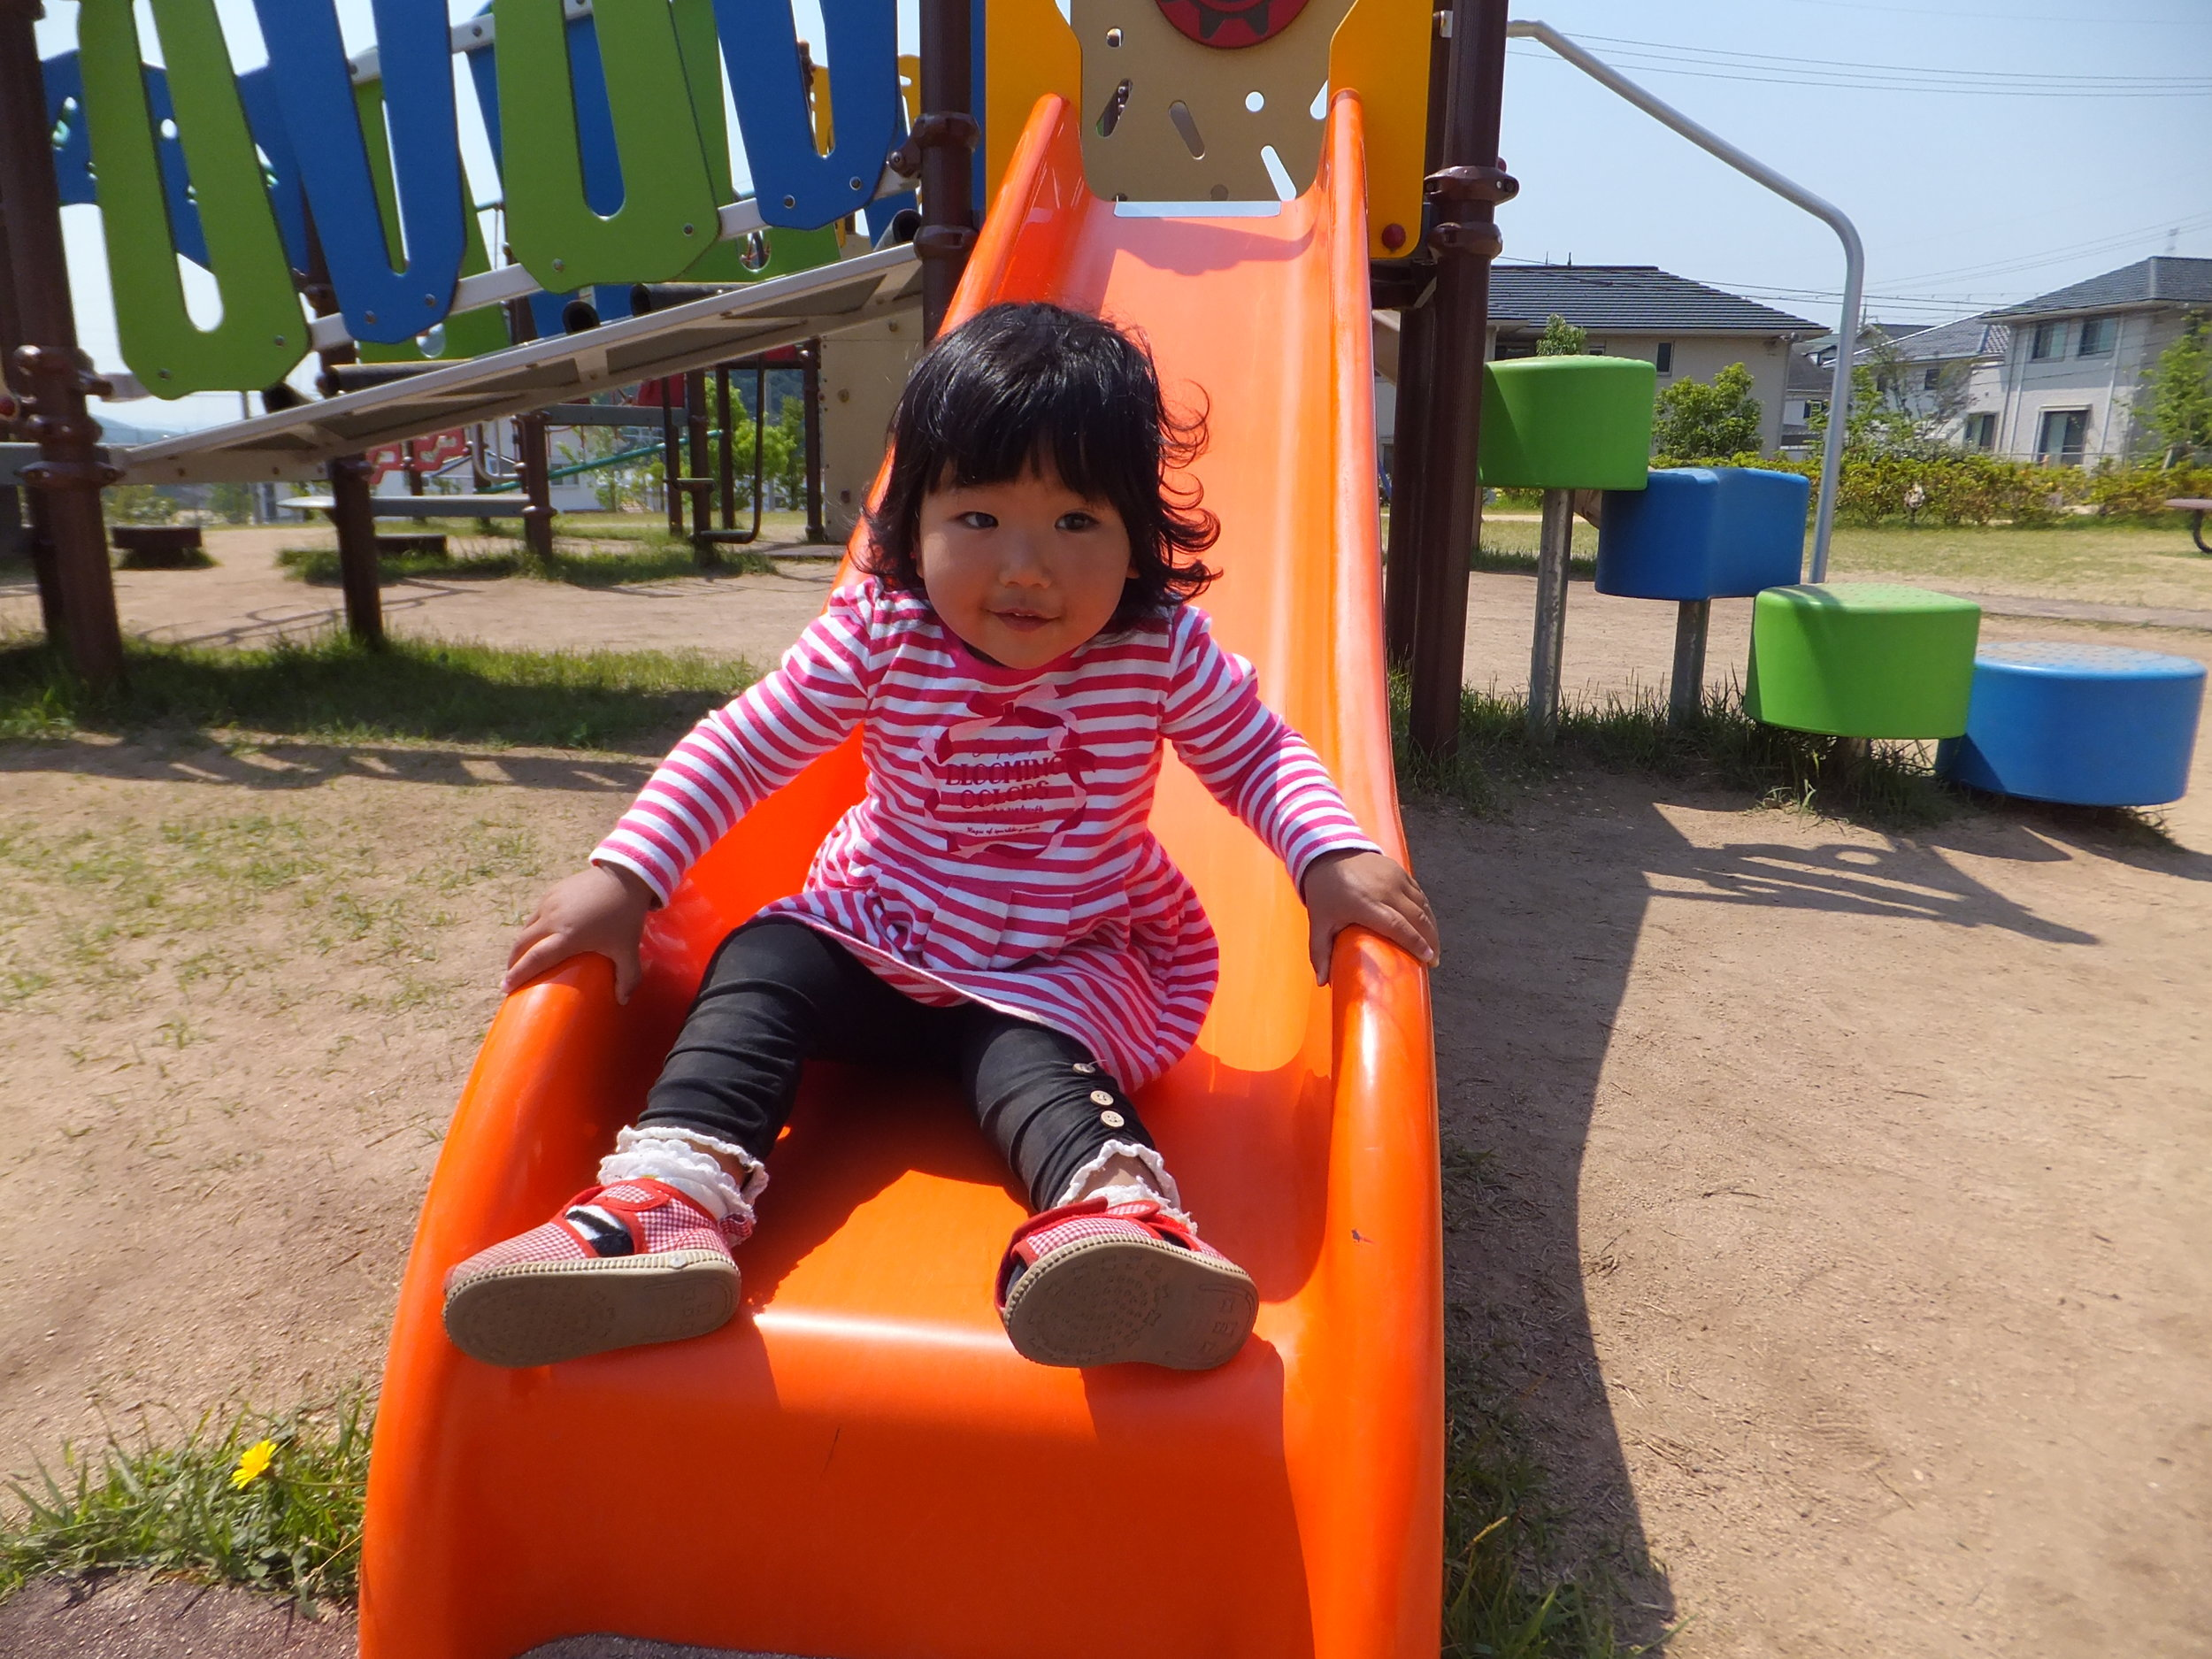 She went down the big girl slide on her own! I'm so proud of her!